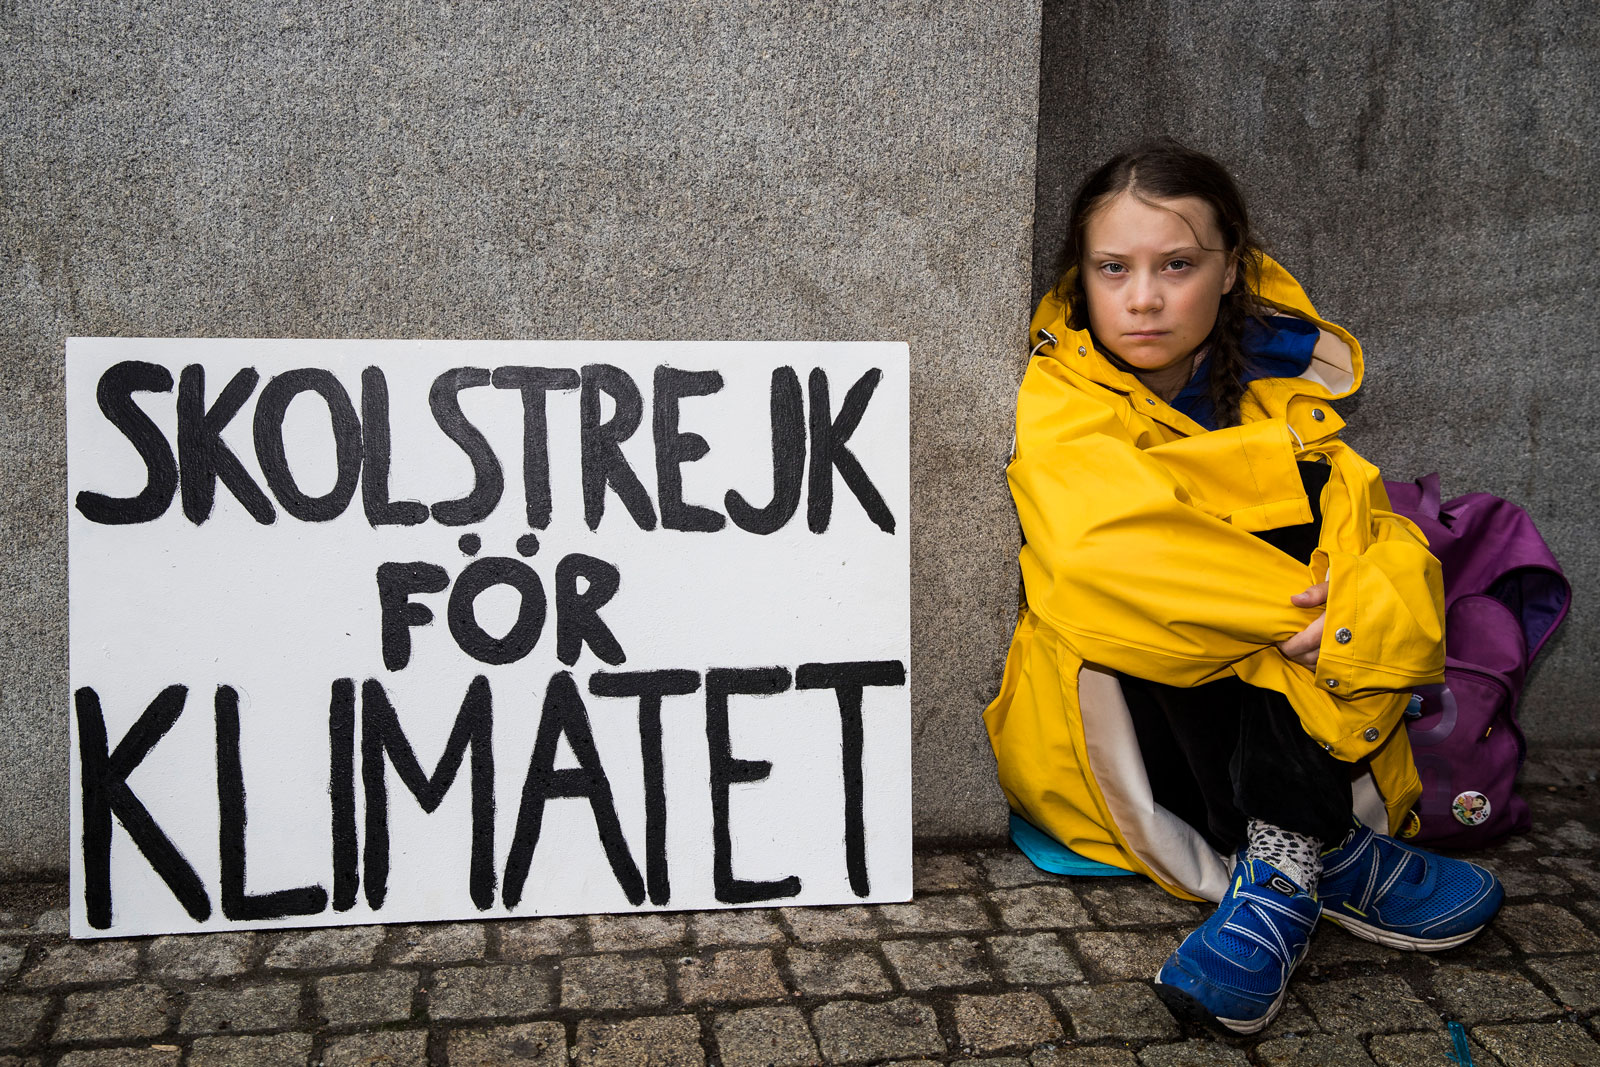 Thunberg leads a school strike and sits outside of Riksdagen, the Swedish parliament building, in order to raise awareness for climate change on August 28, 2018 in Stockholm, Sweden.